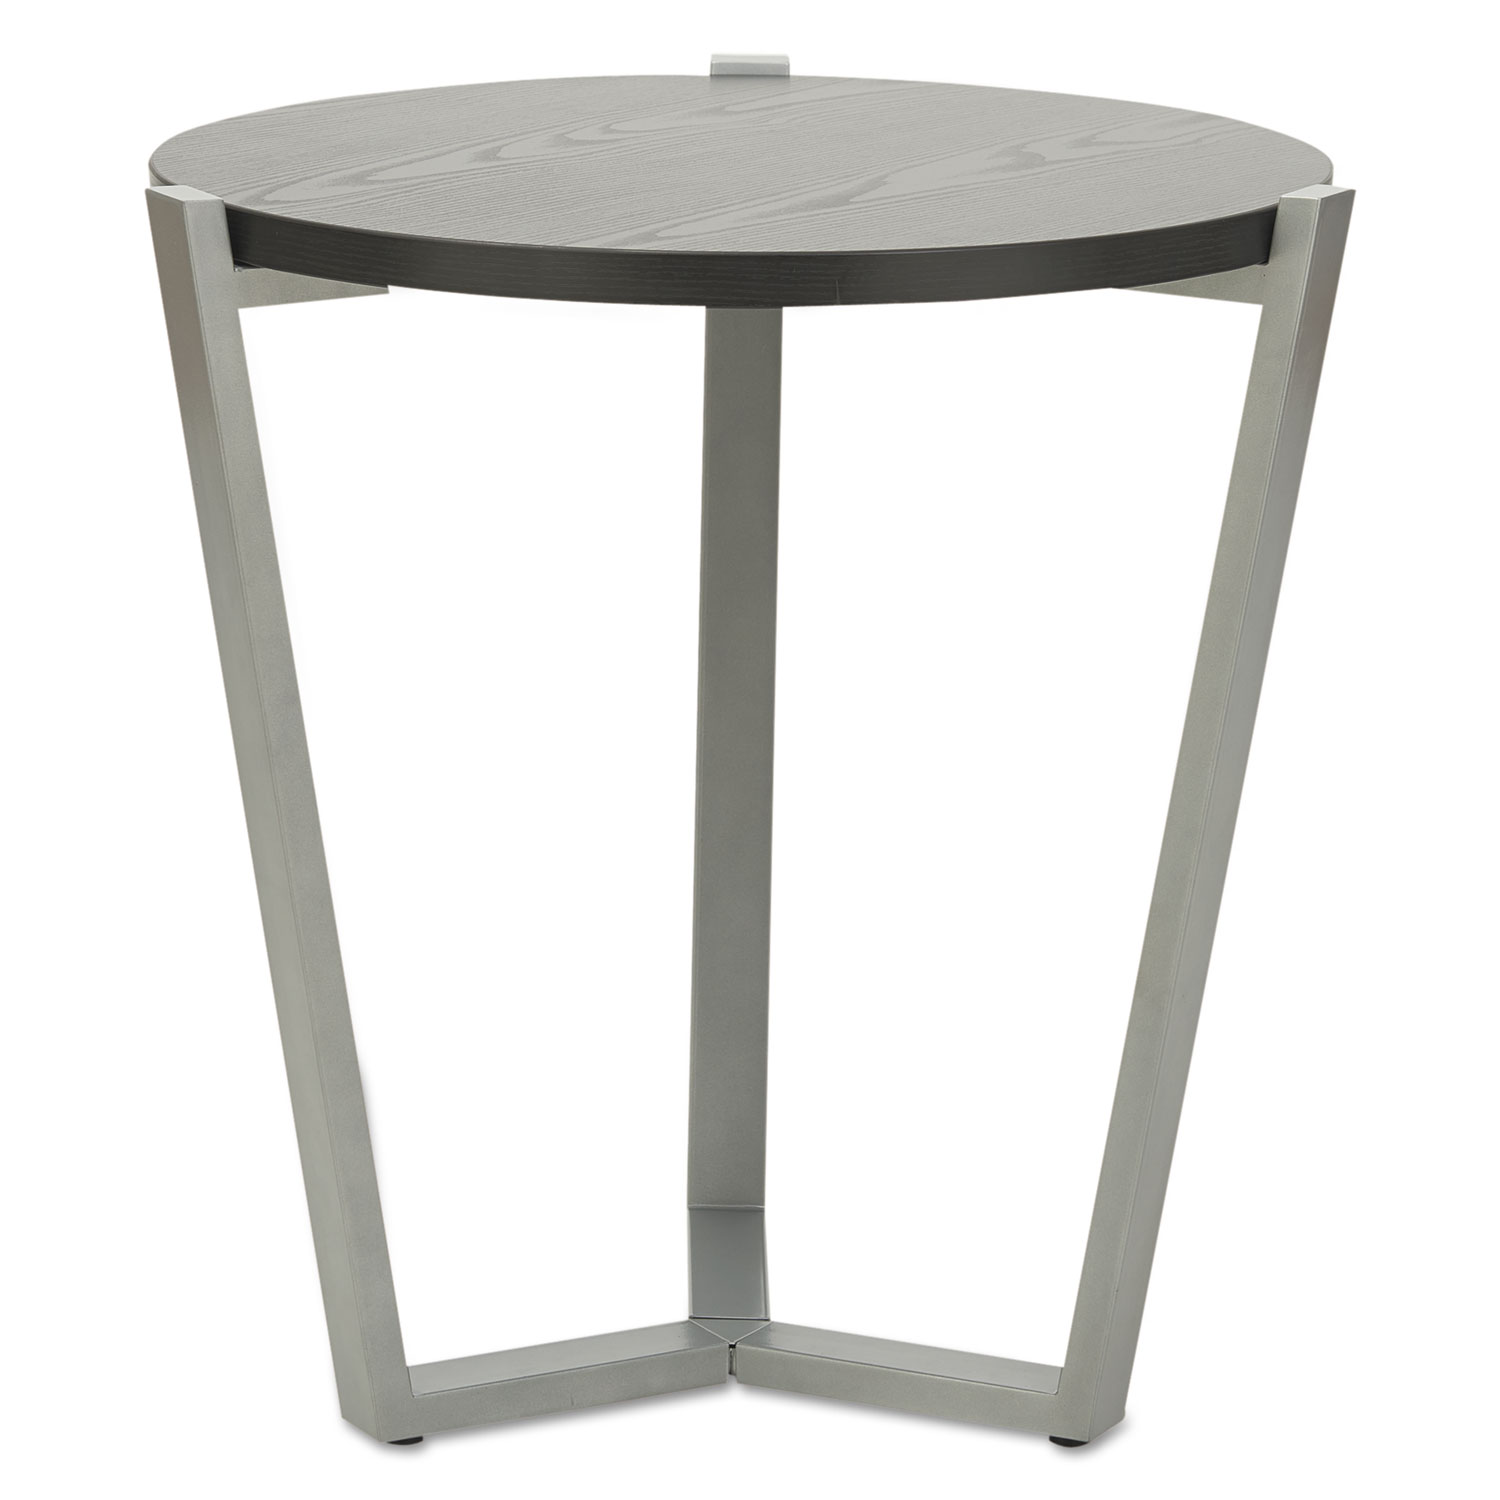 Charmant Round Occasional Corner Table, 21 1/4 Dia X 22 3/4h, Black/Silver